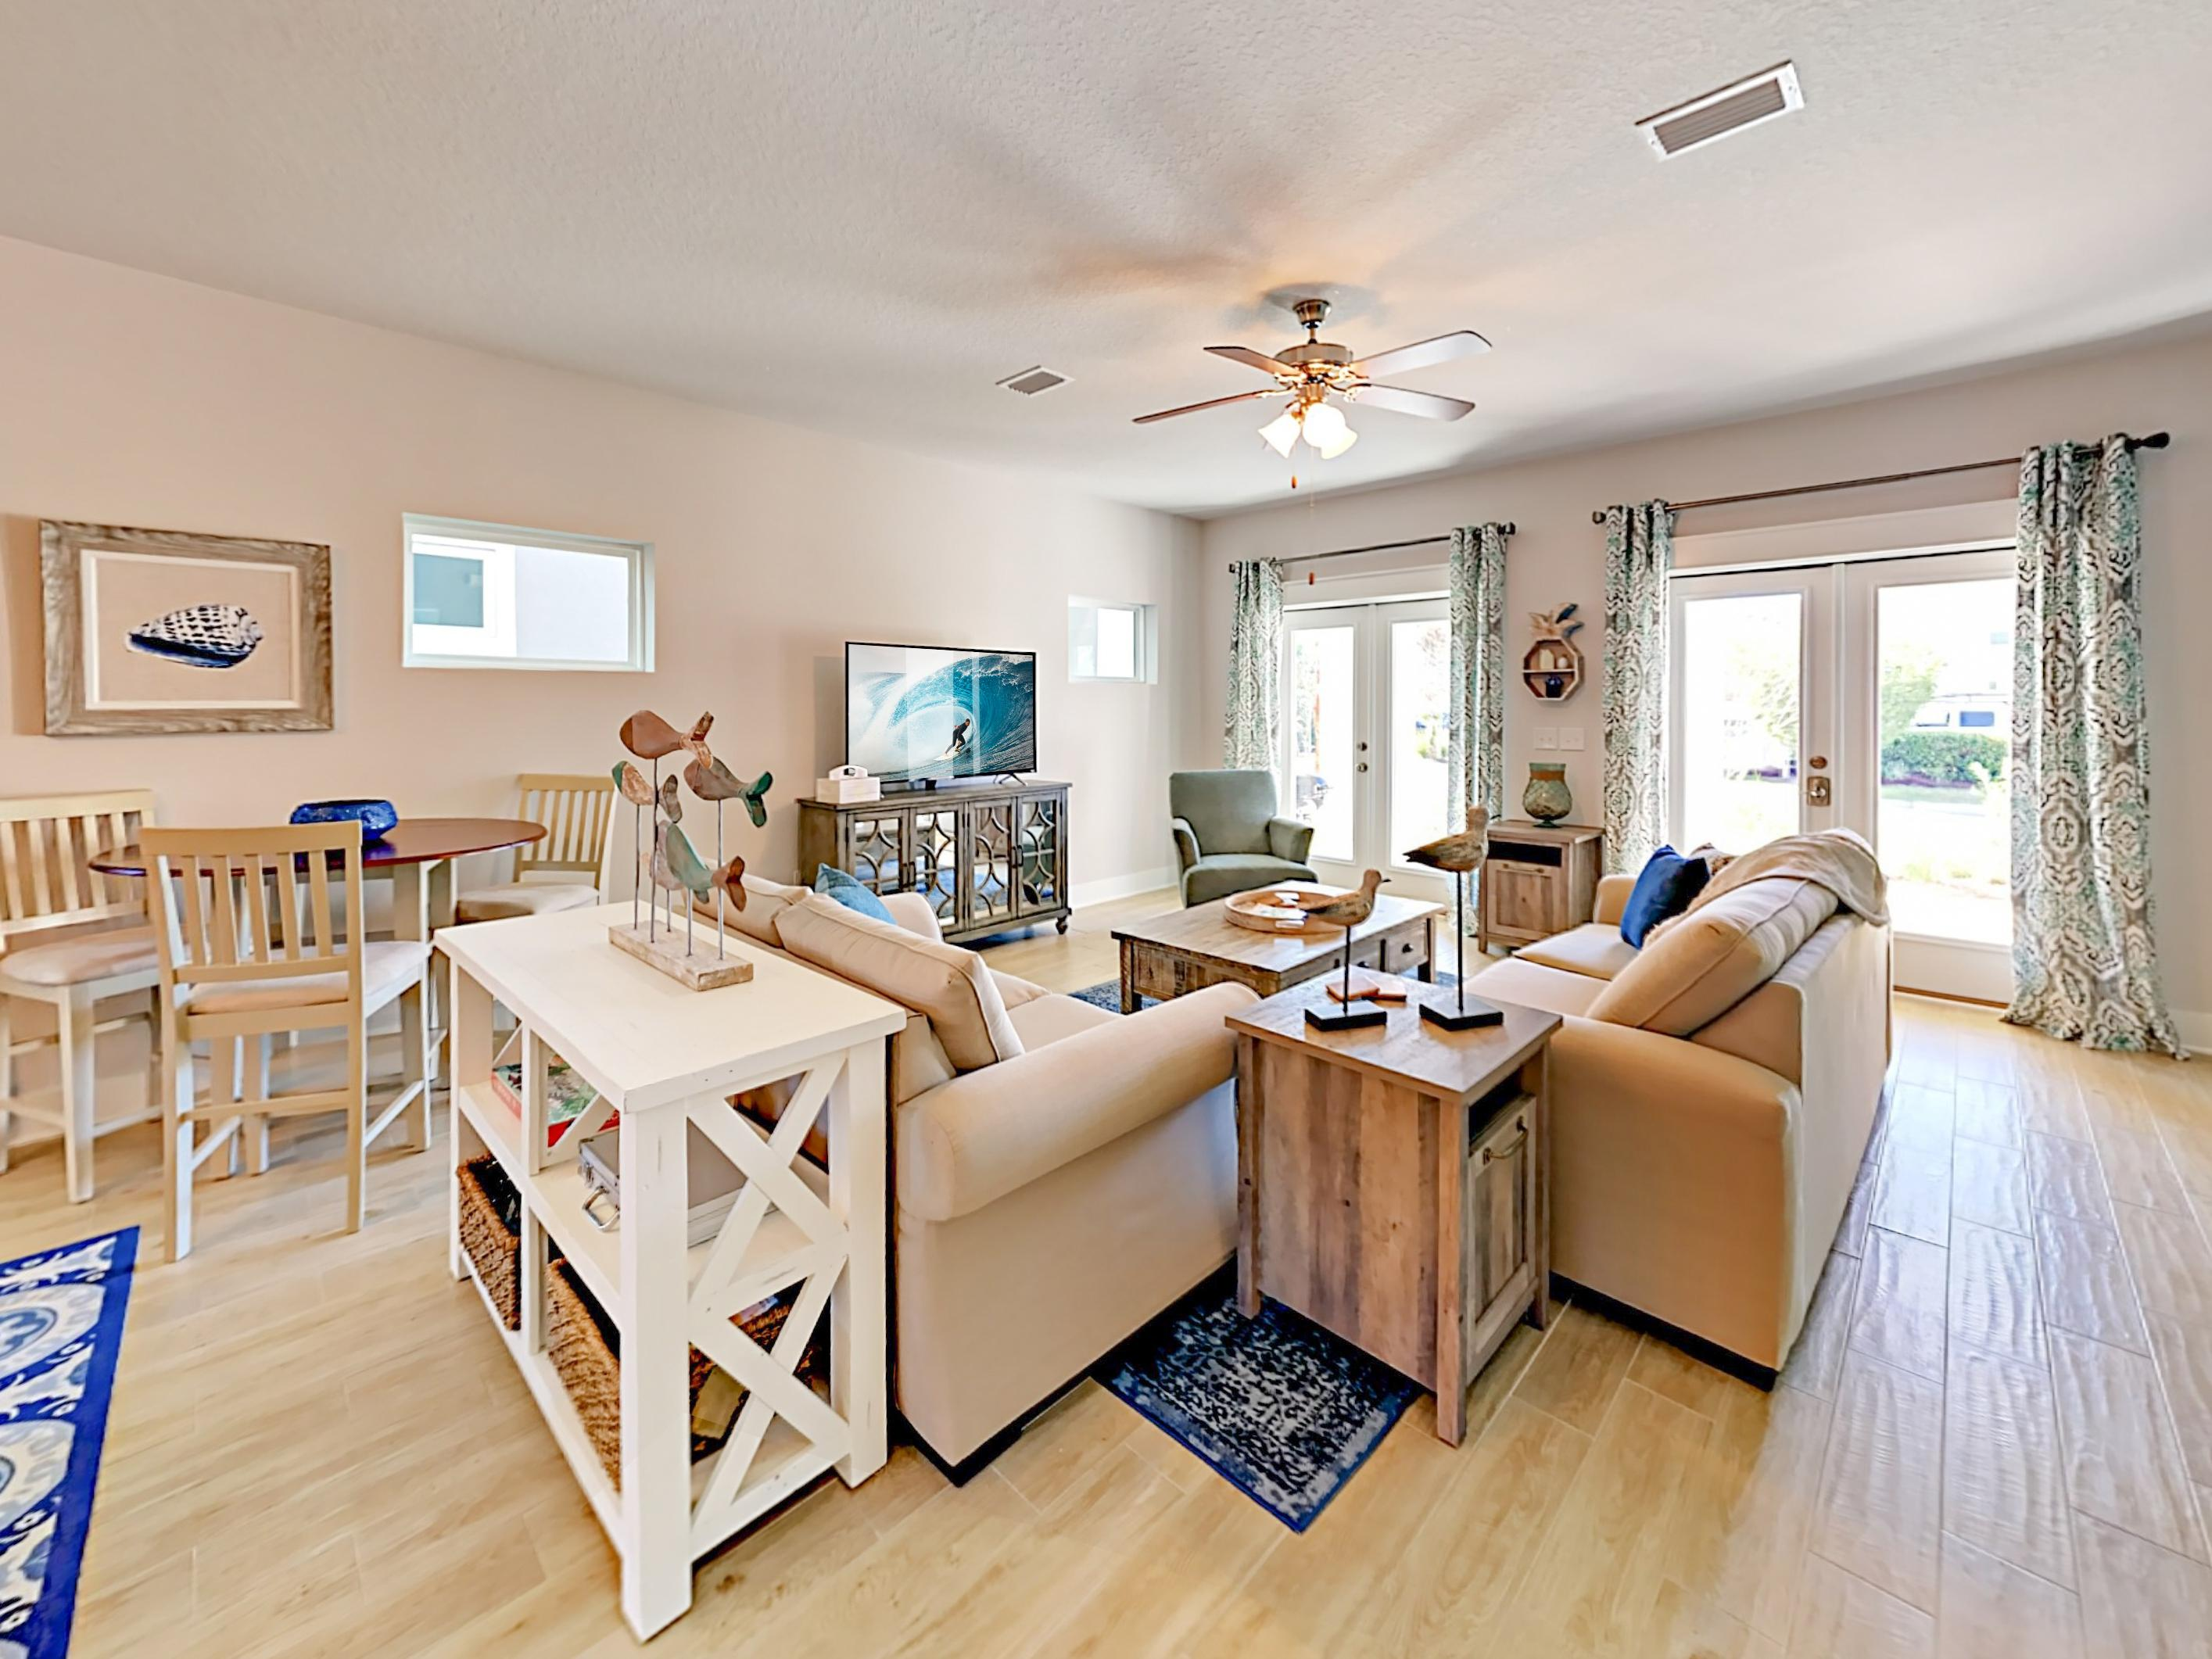 Welcome to Perdido Key! Your brand-new home is professionally managed by TurnKey Vacation Rentals.